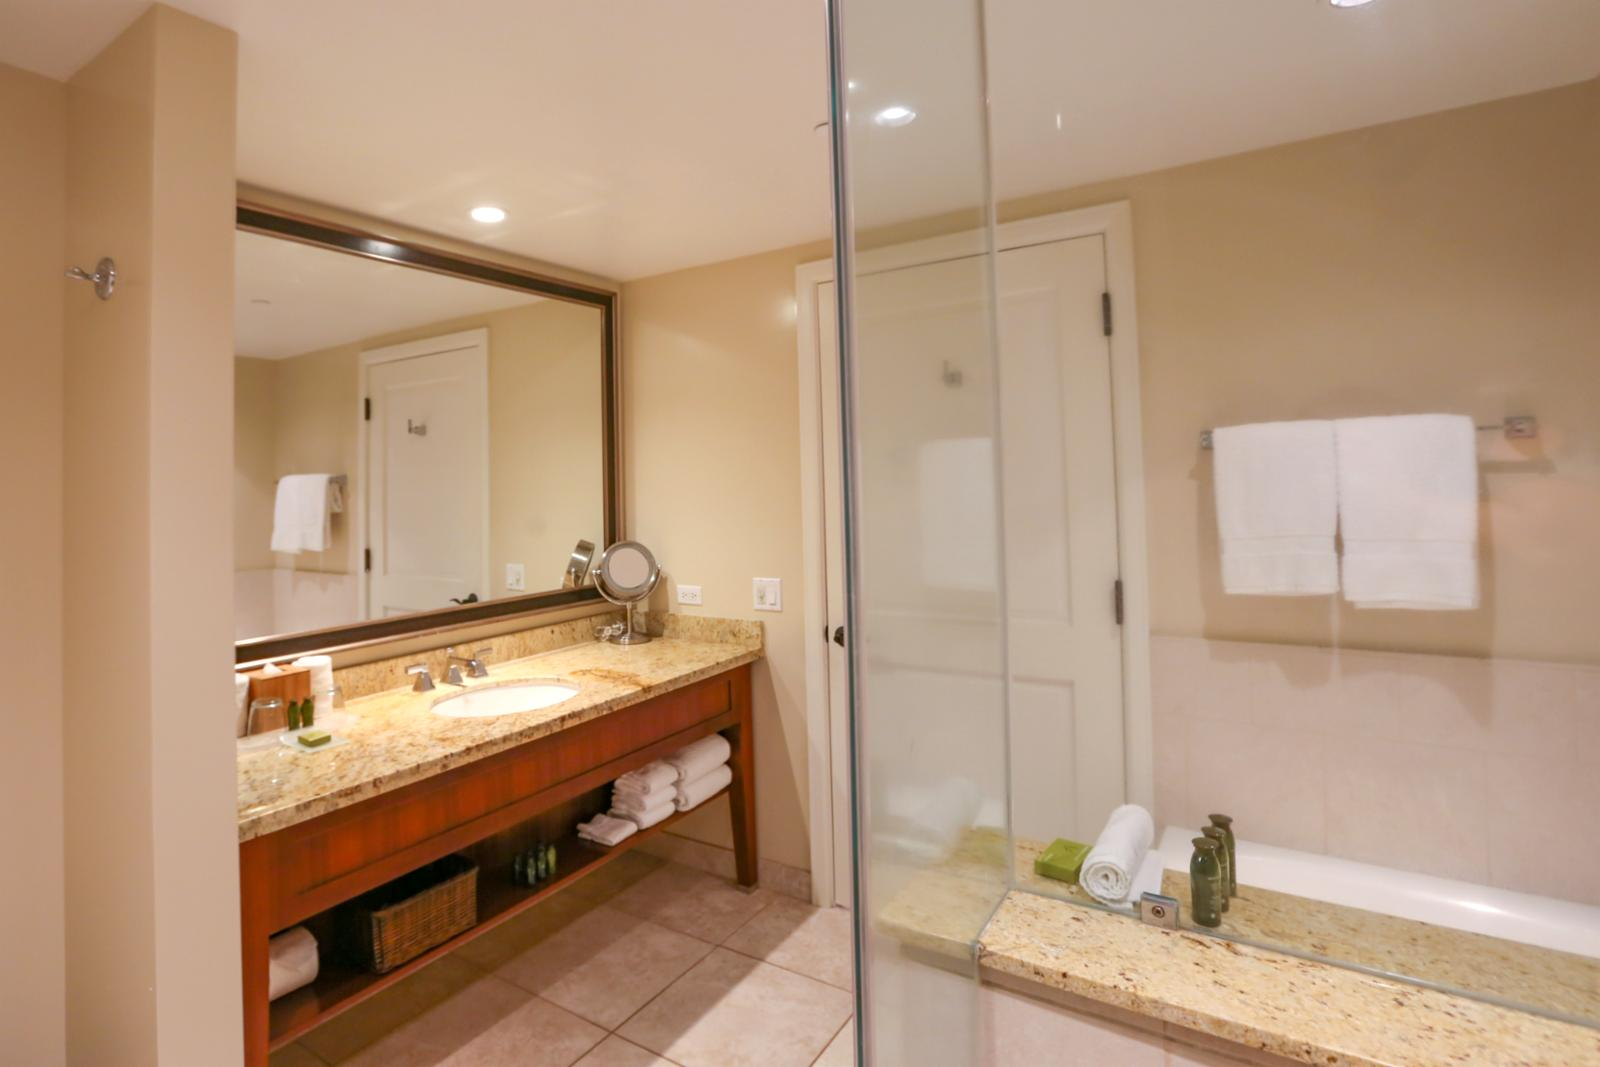 Floor to ceiling glass enclosed shower in this LARGE bath room